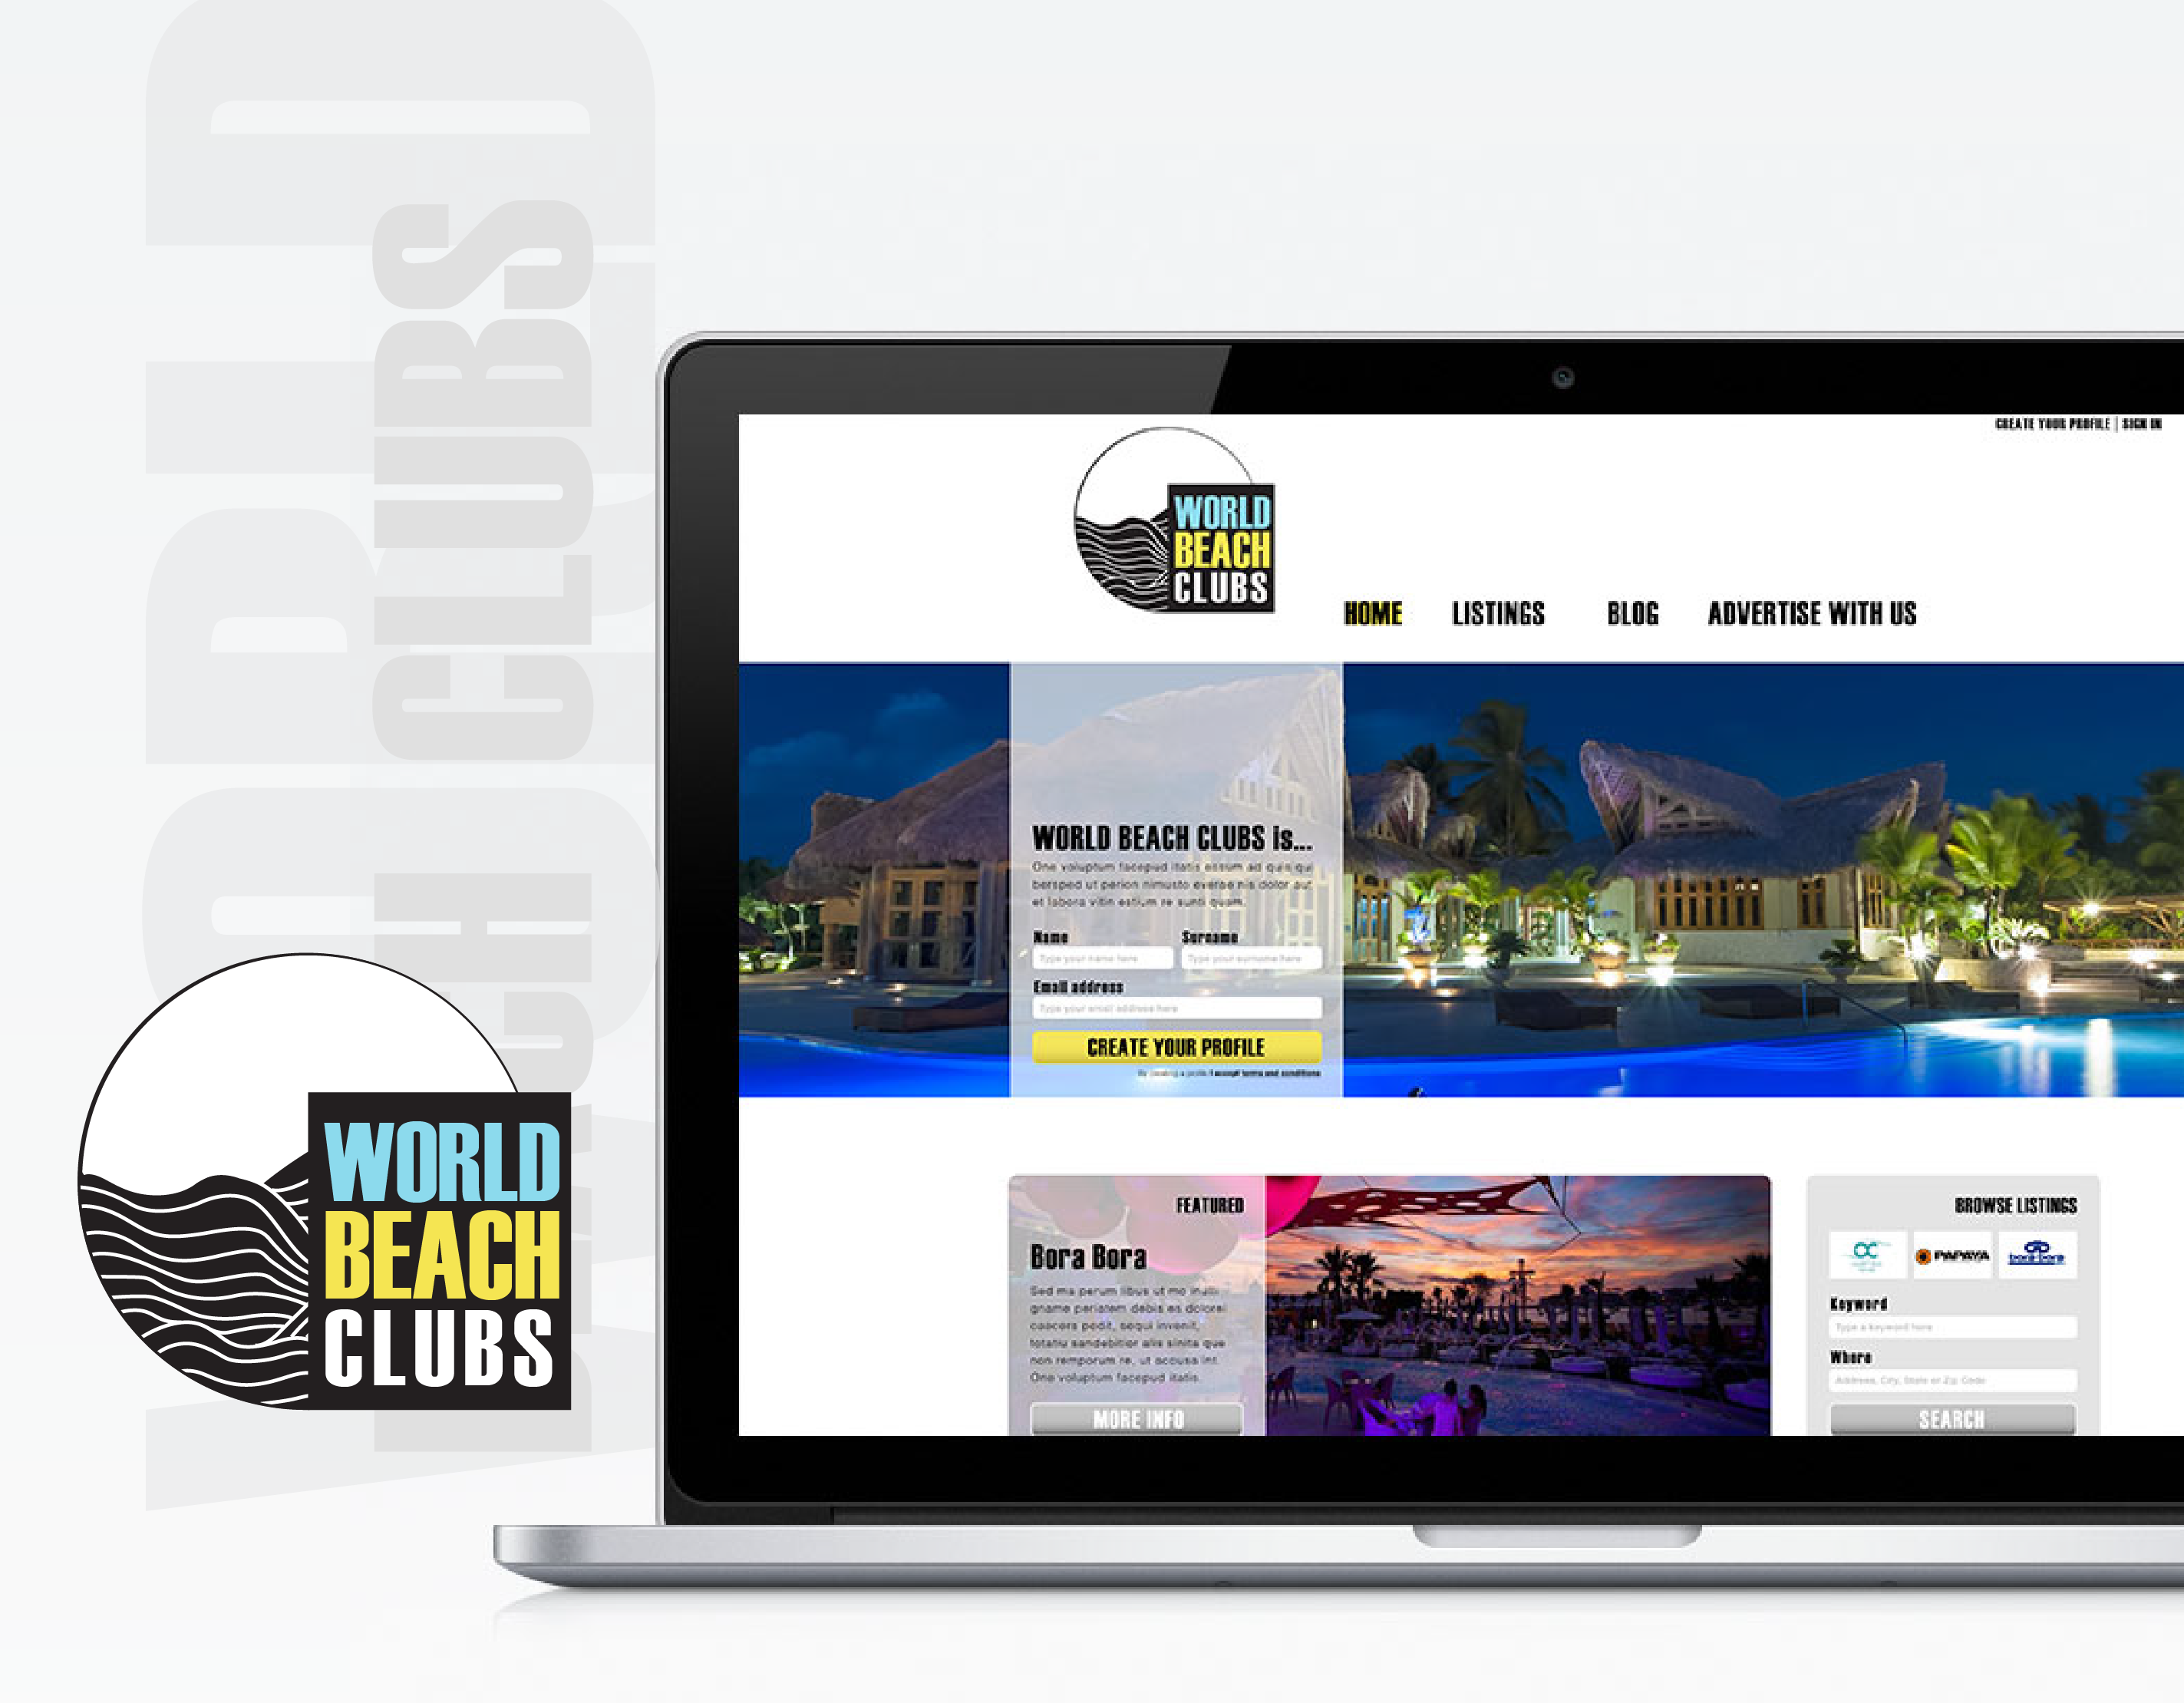 WORLD BEACH CLUBES CORPORATE REDESIGN - JUN 2013